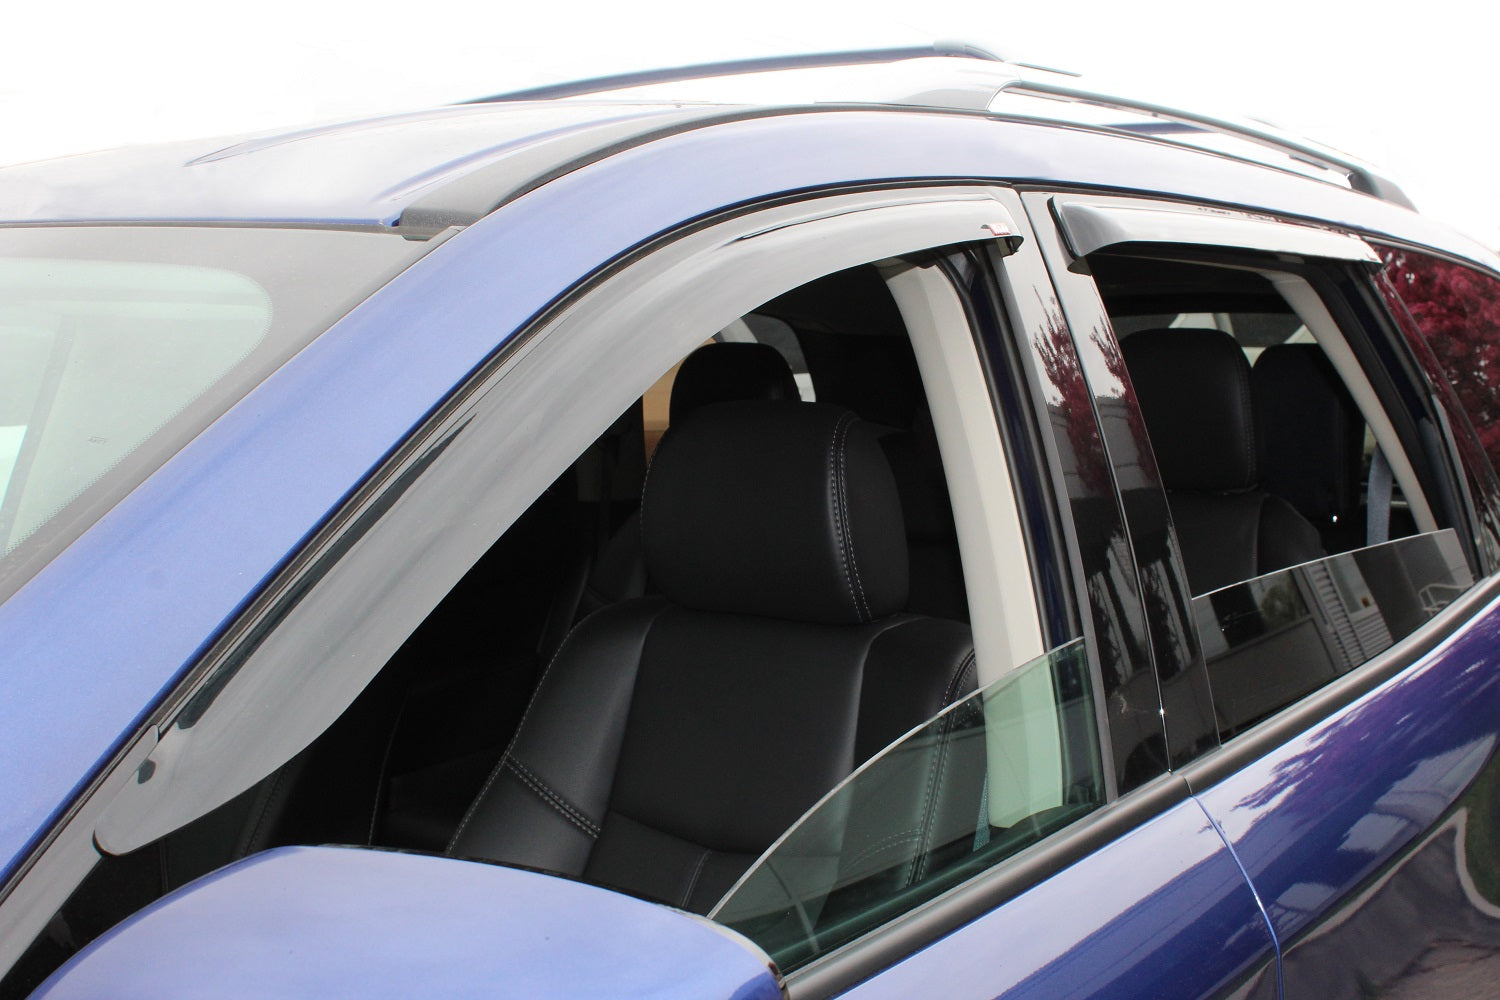 2014 Nissan Pathfinder Slim Wind Deflector